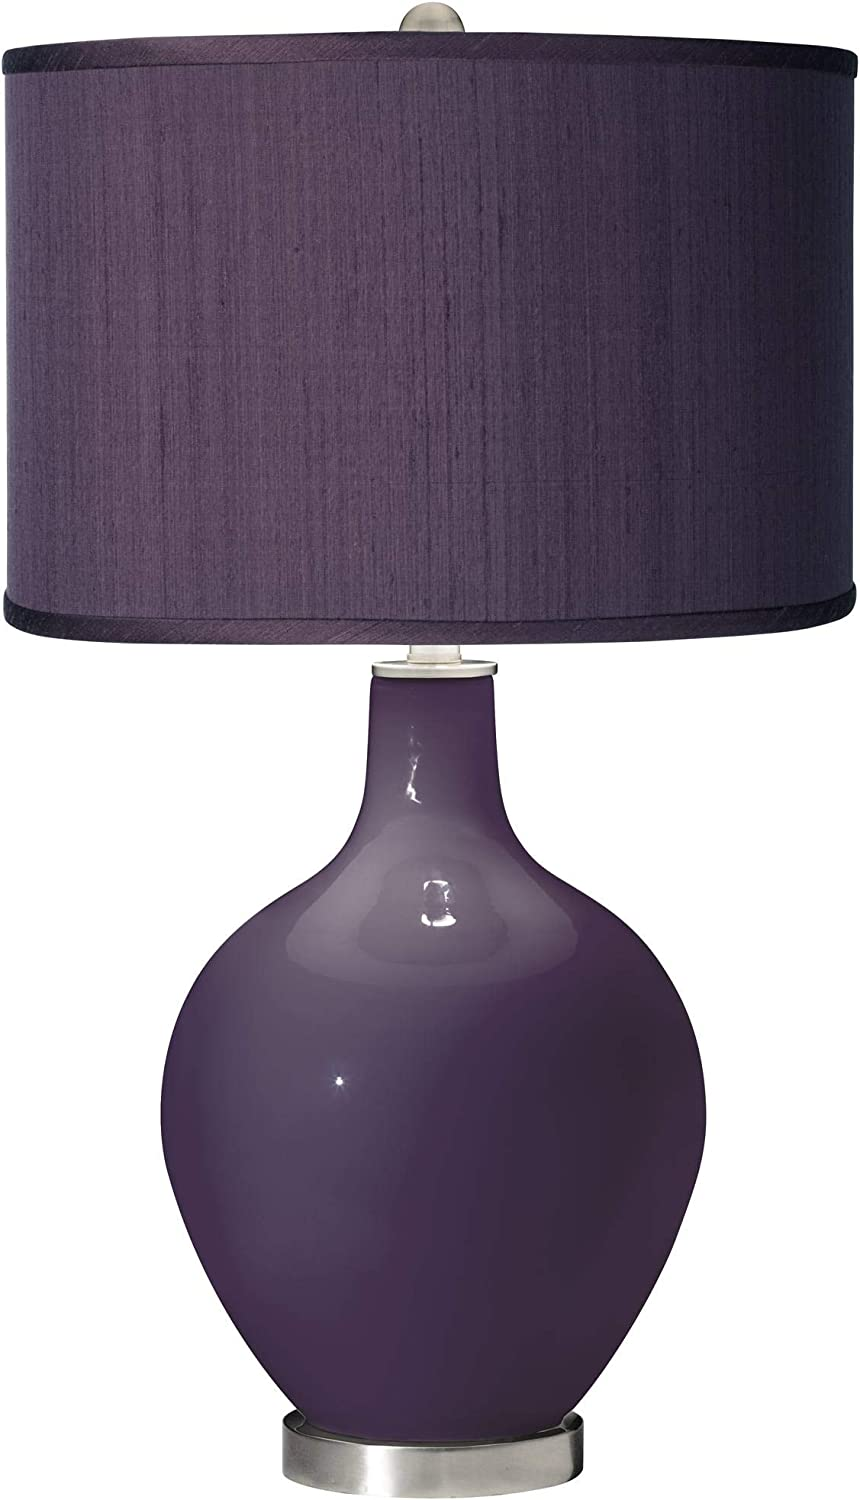 Modern Contemporary Table Lamp Quixotic Plum Glass OVO Eggplant Faux Silk Fabric Drum Shade Decor for Living Room Bedroom House Bedside Nightstand Home Office Reading Family - Color + Plus